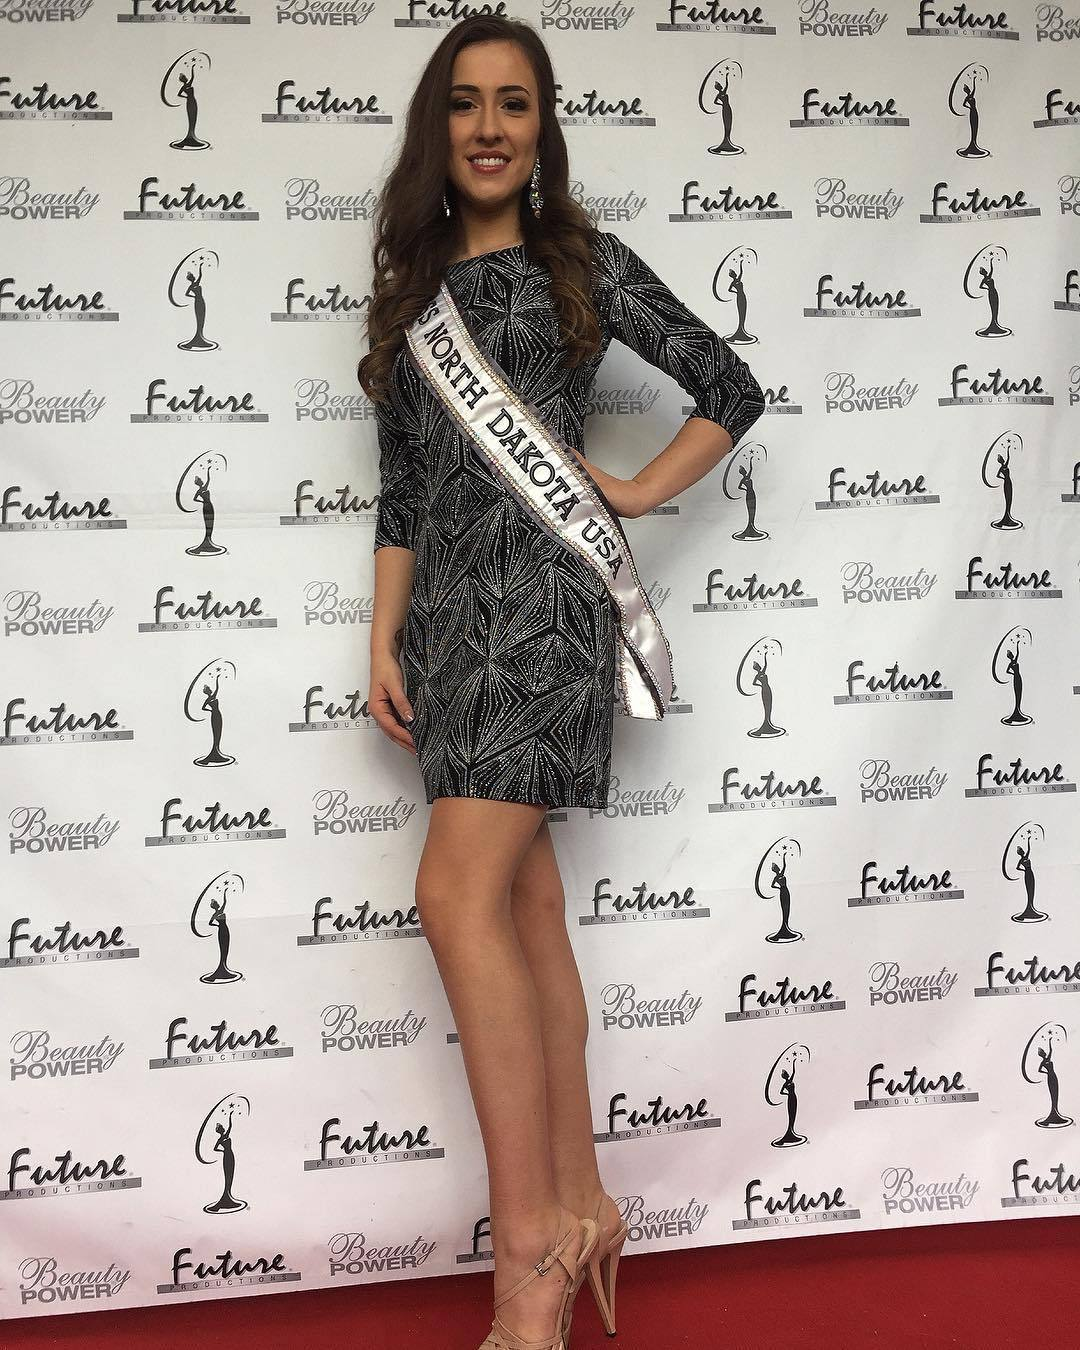 samantha redding, miss north dakota 2019. 46319714_194571671478854_6505184865190321259_n